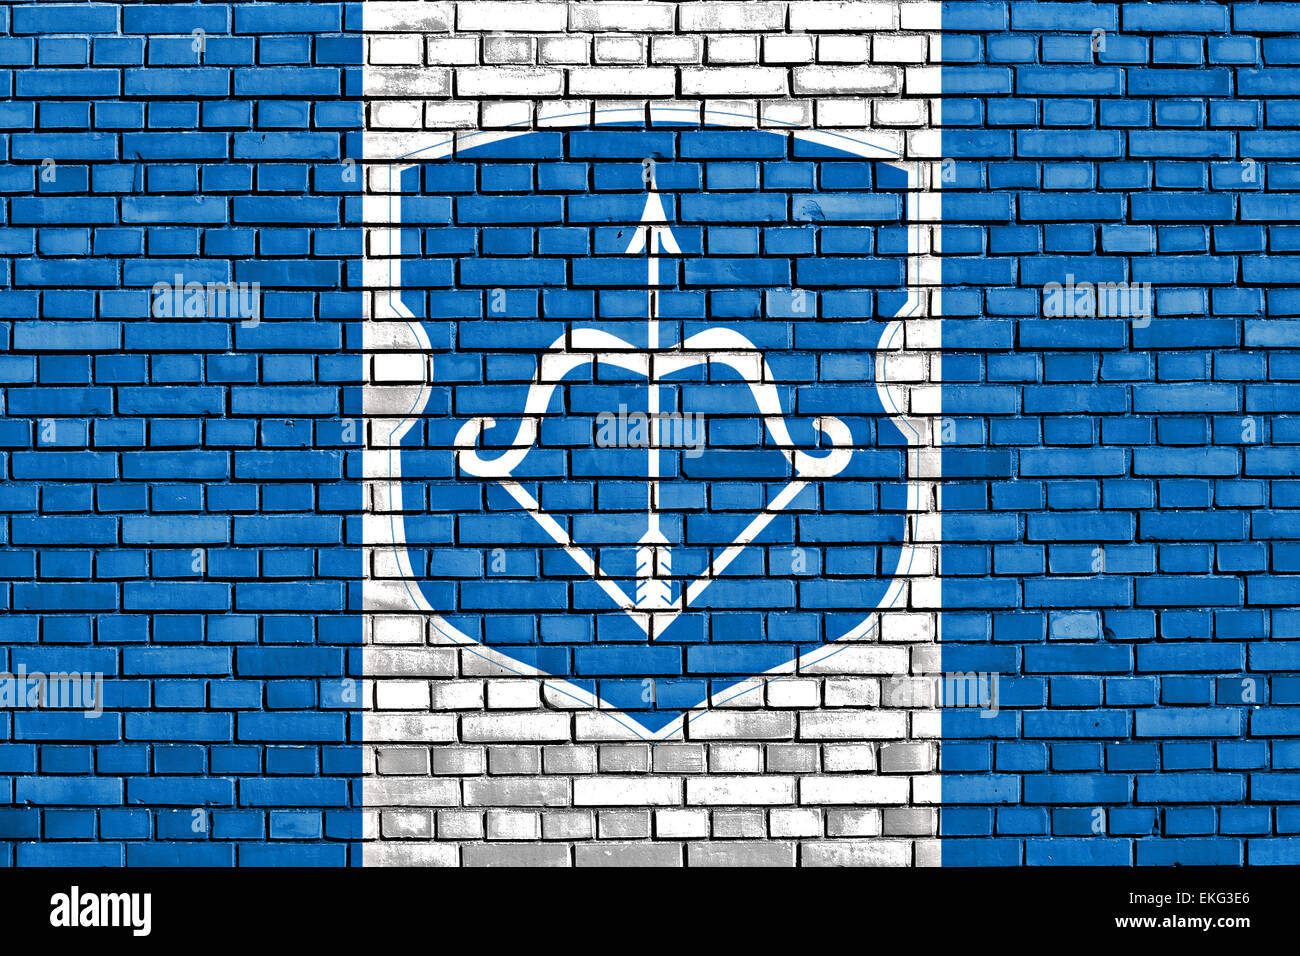 flag of Brest painted on brick wall - Stock Image